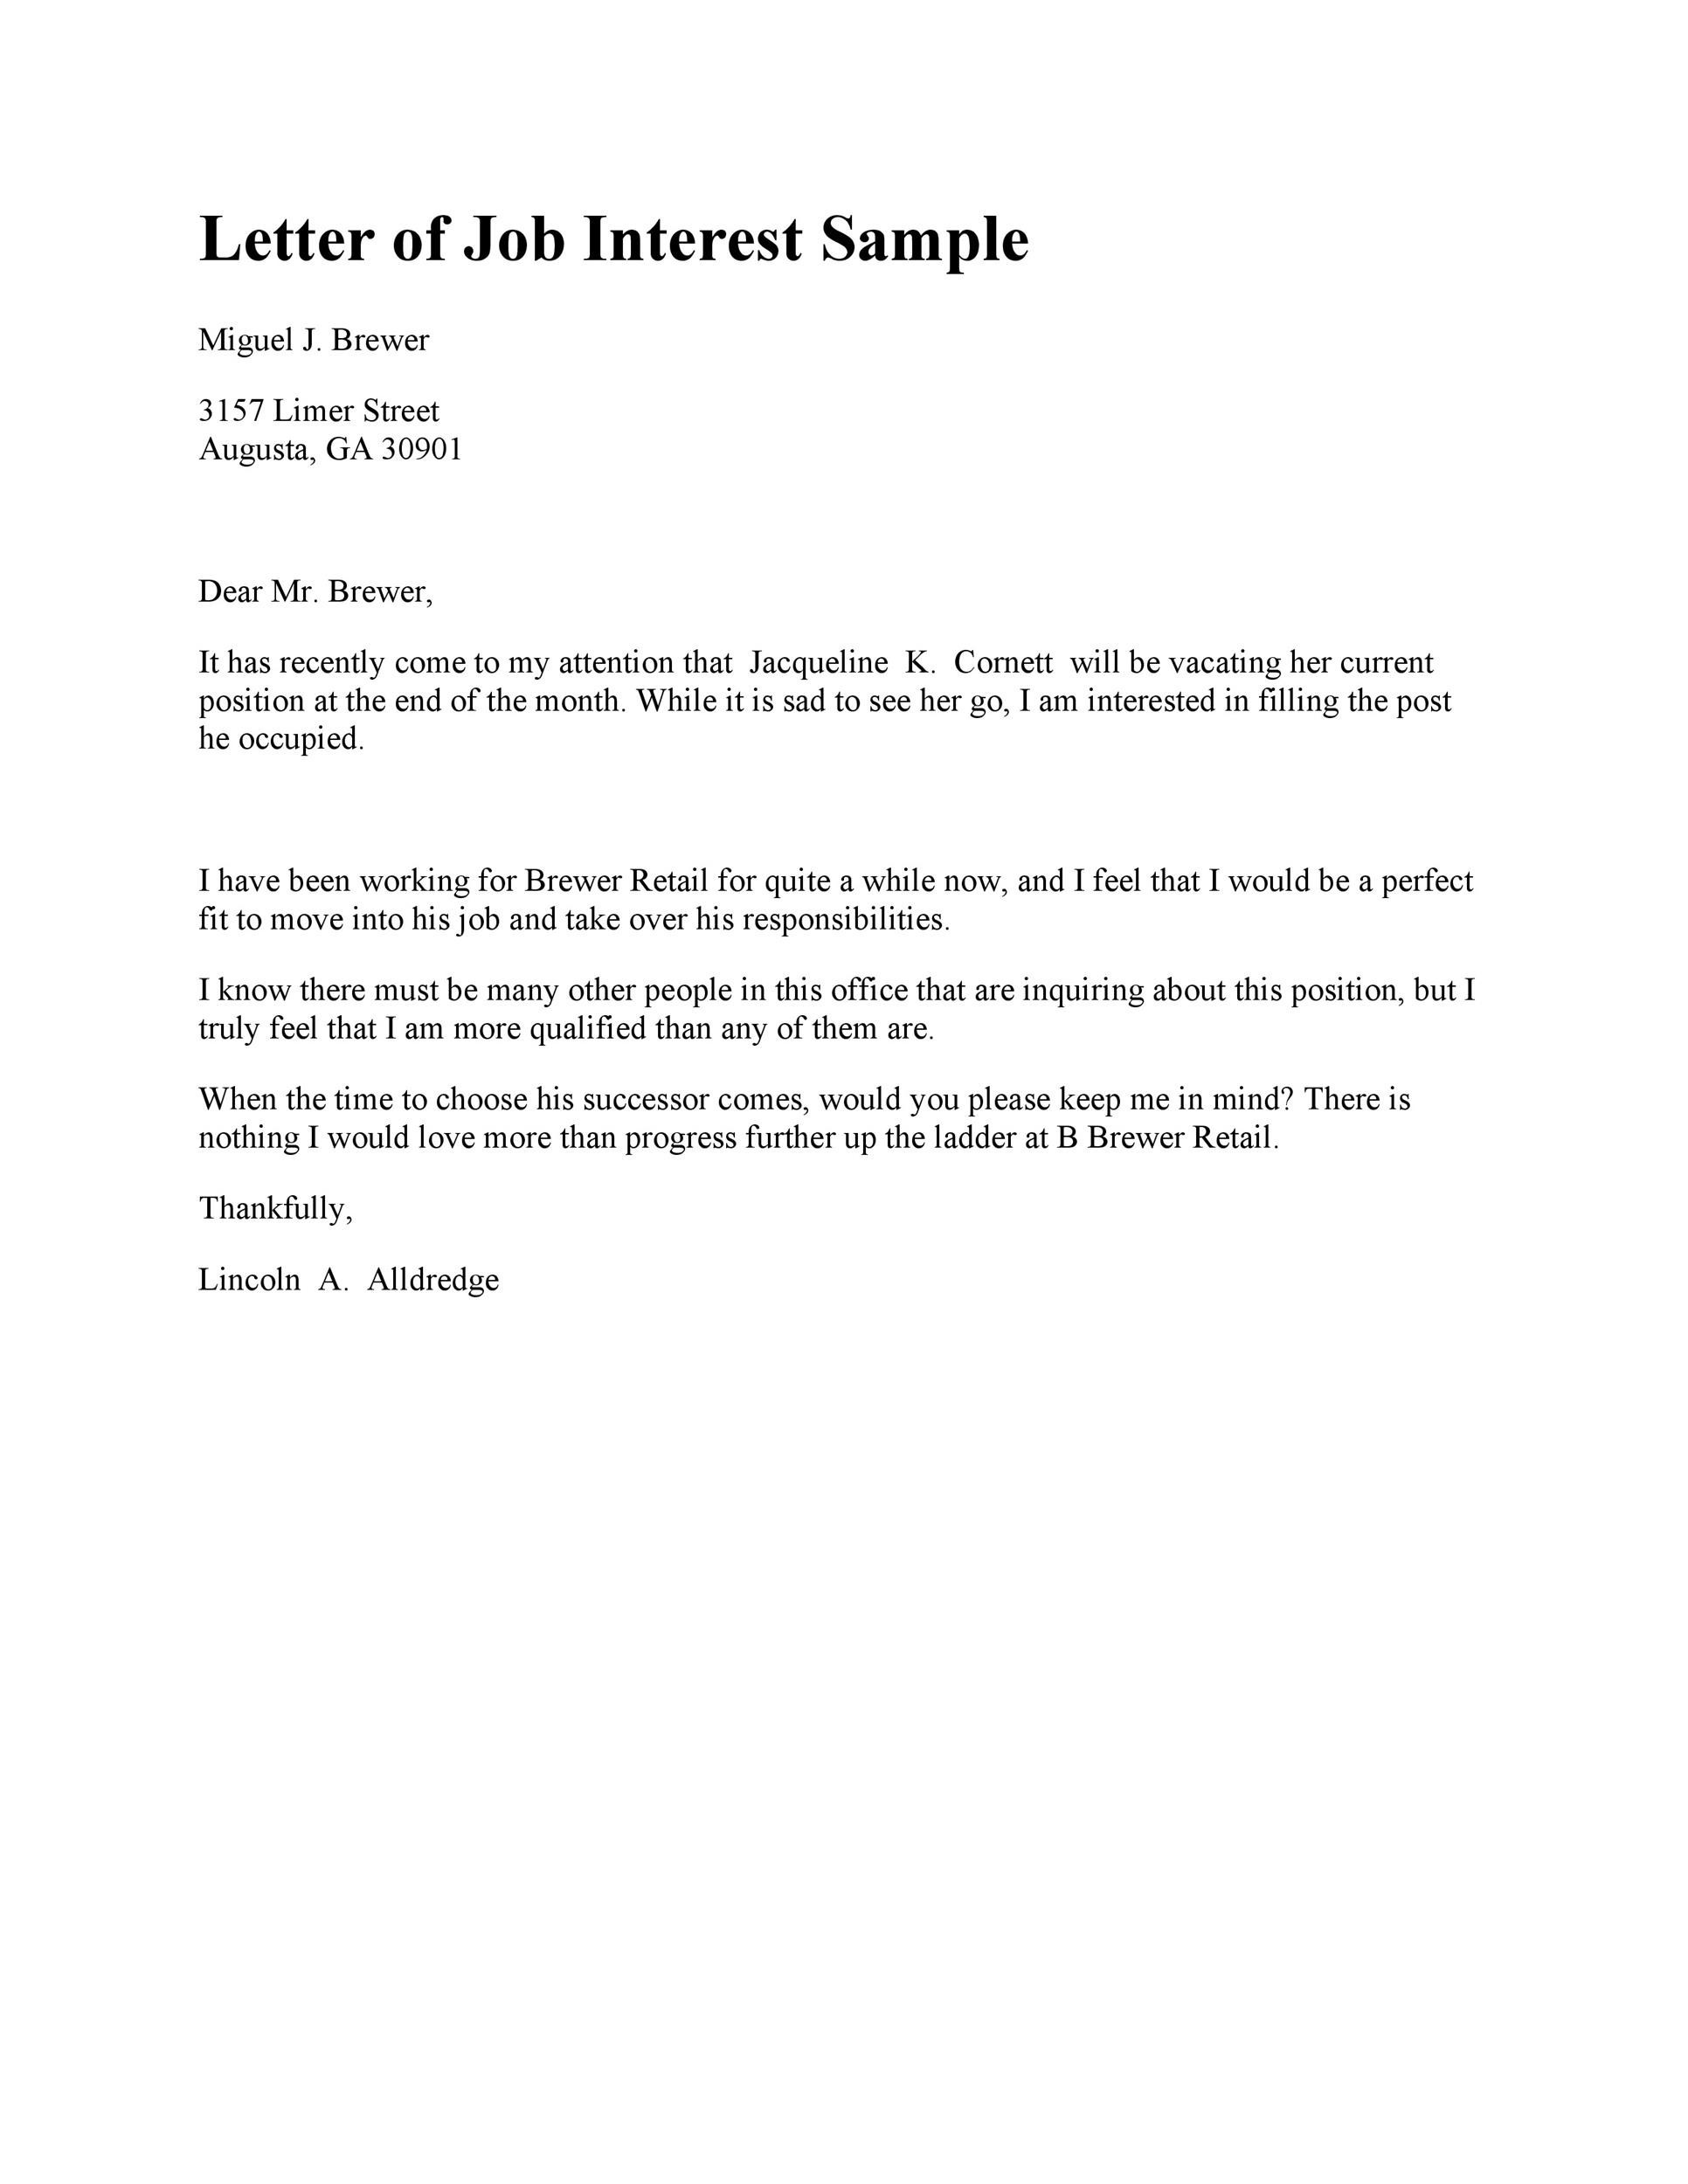 Sample cover letter for legal assistant image 1